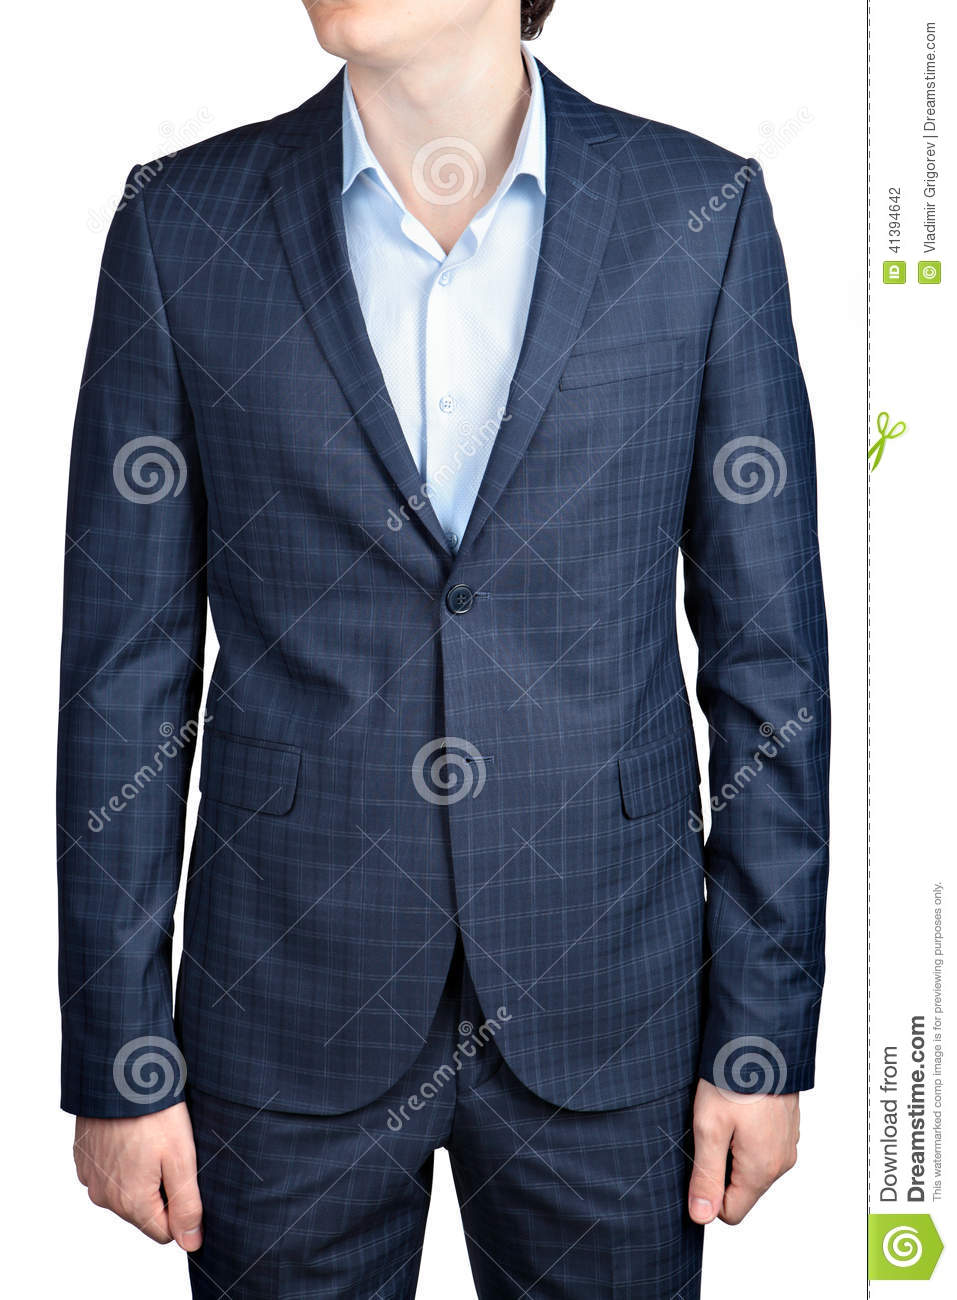 Checkered Suit For Men Stock Photo - Image: 41394642